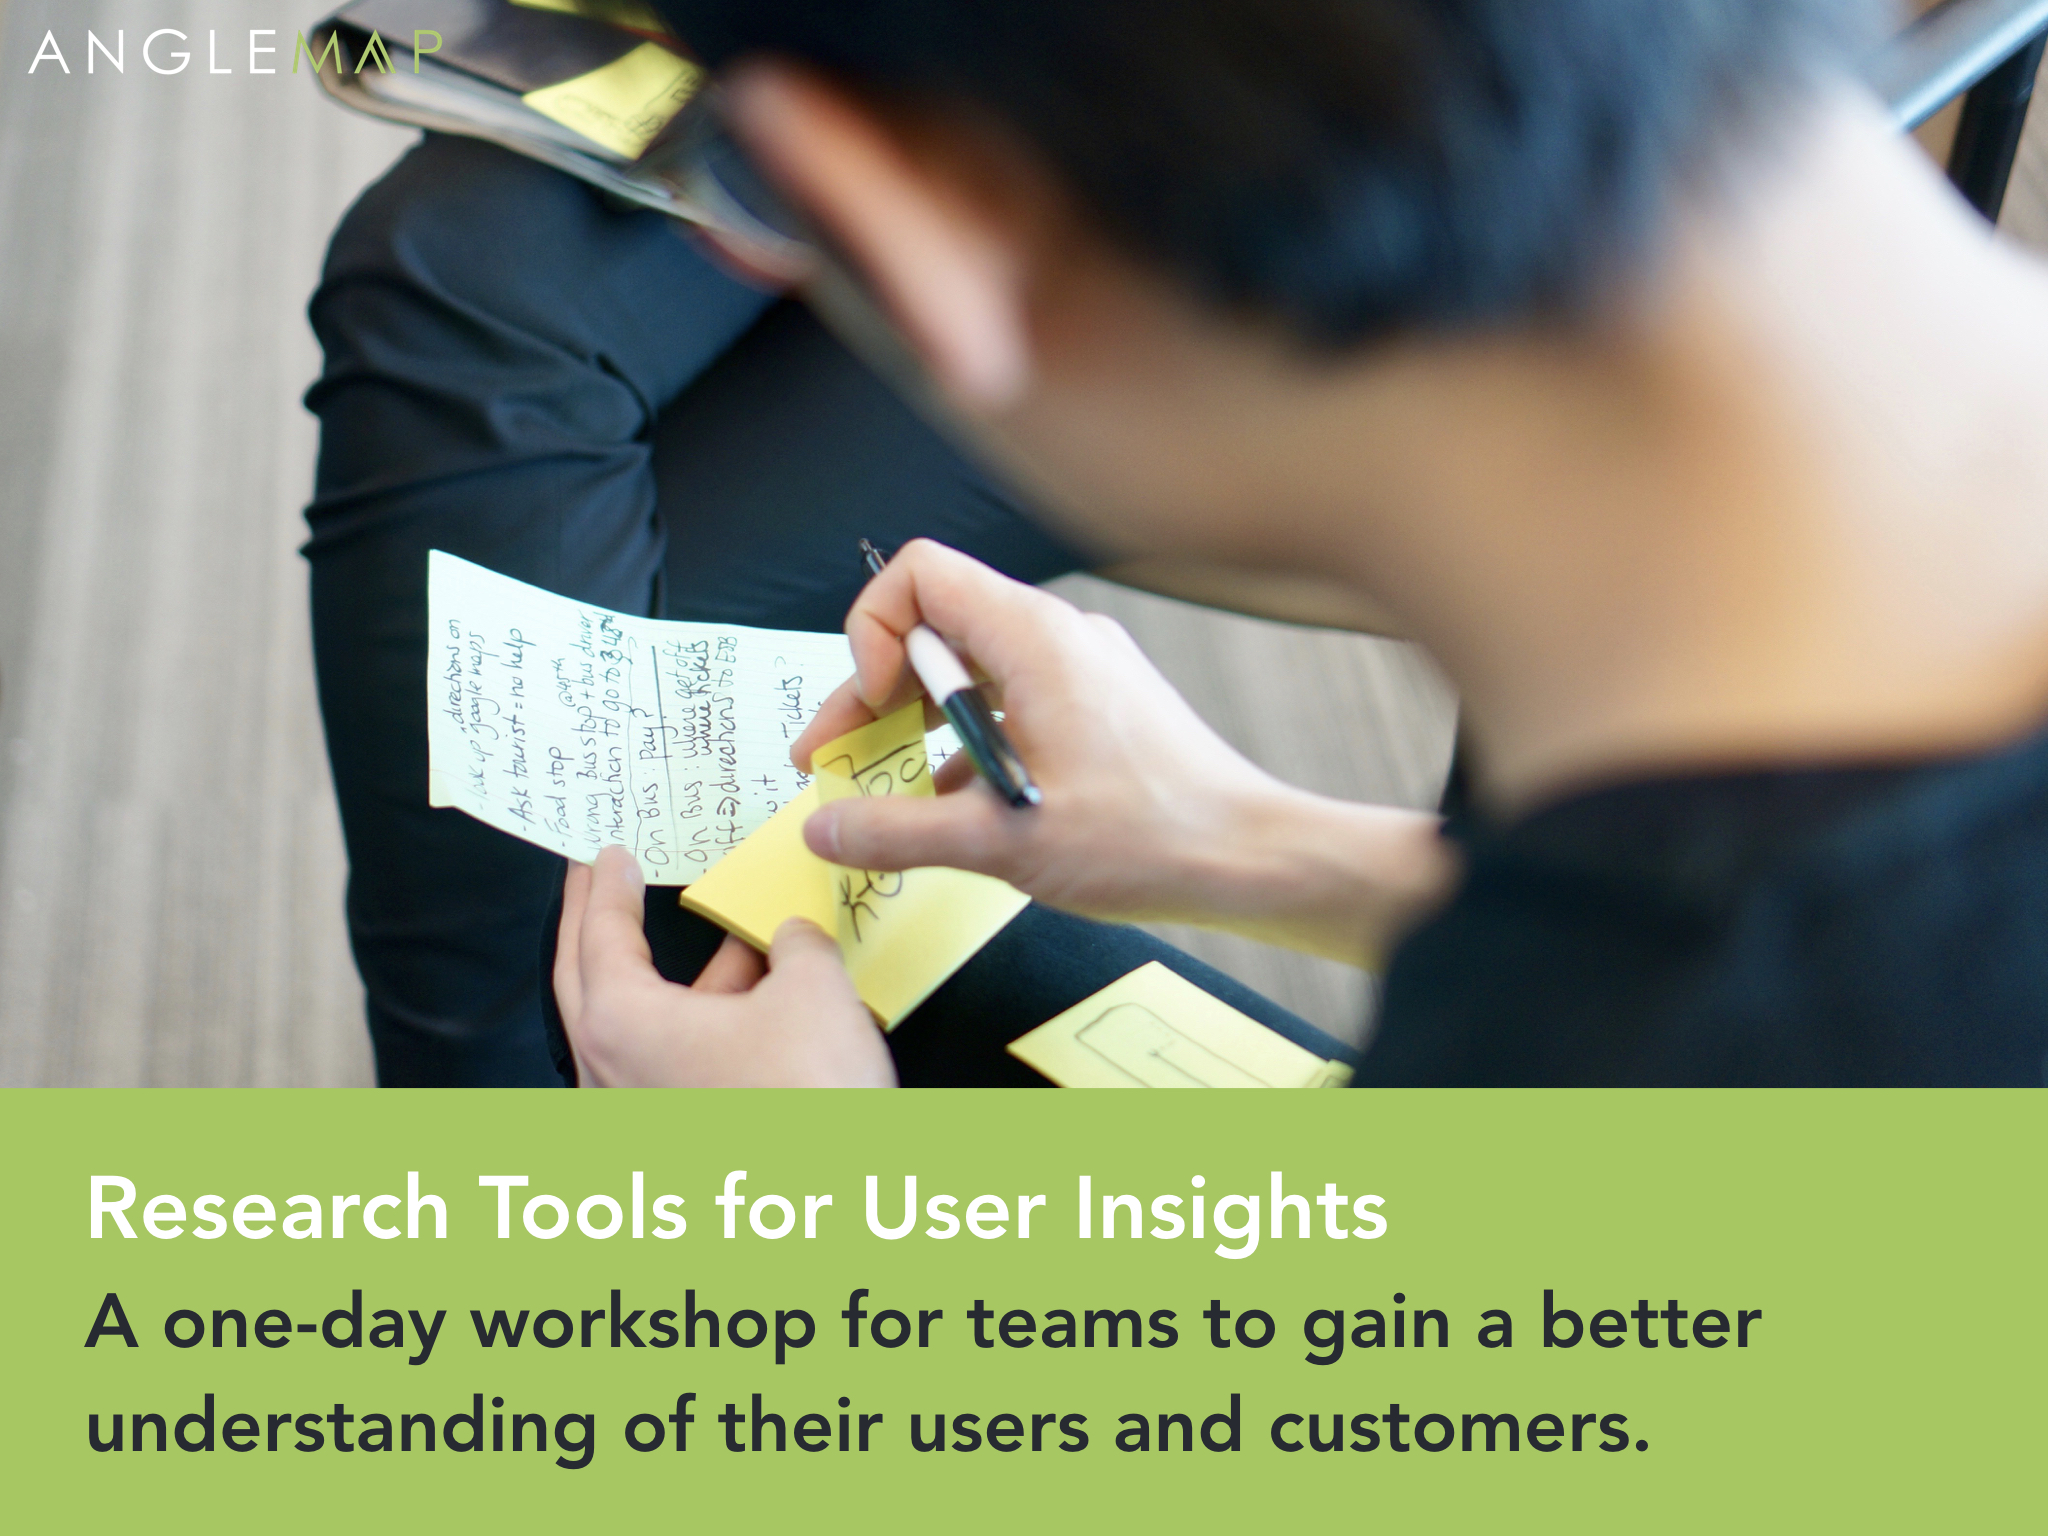 Research Tools for User Insights